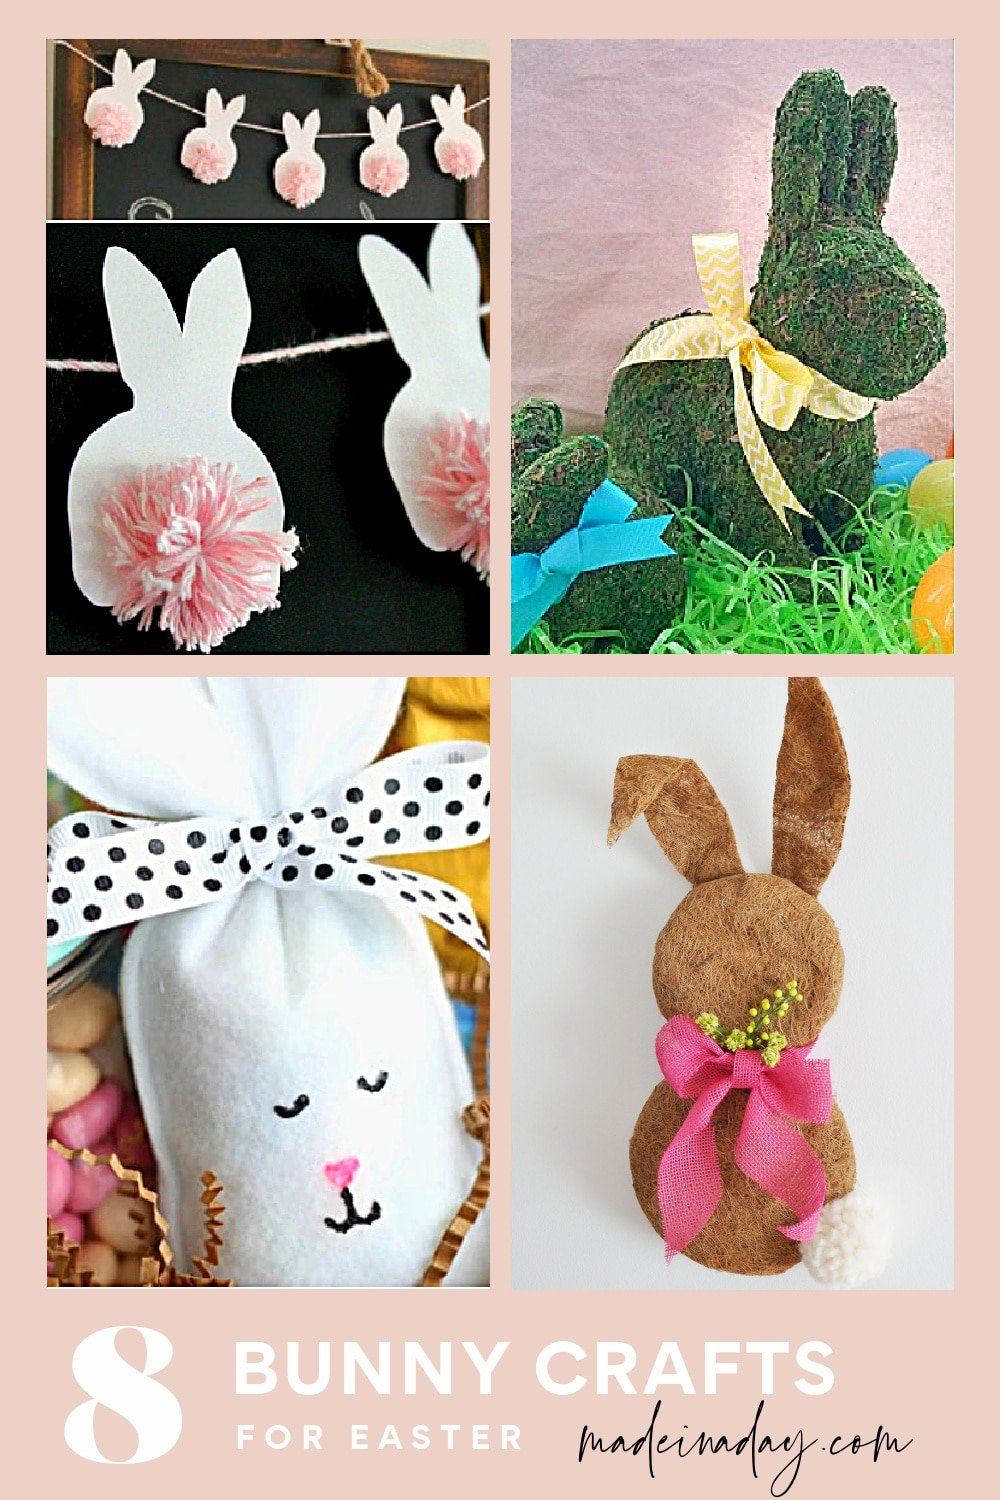 8 Sweet Bunny Crafts for Easter